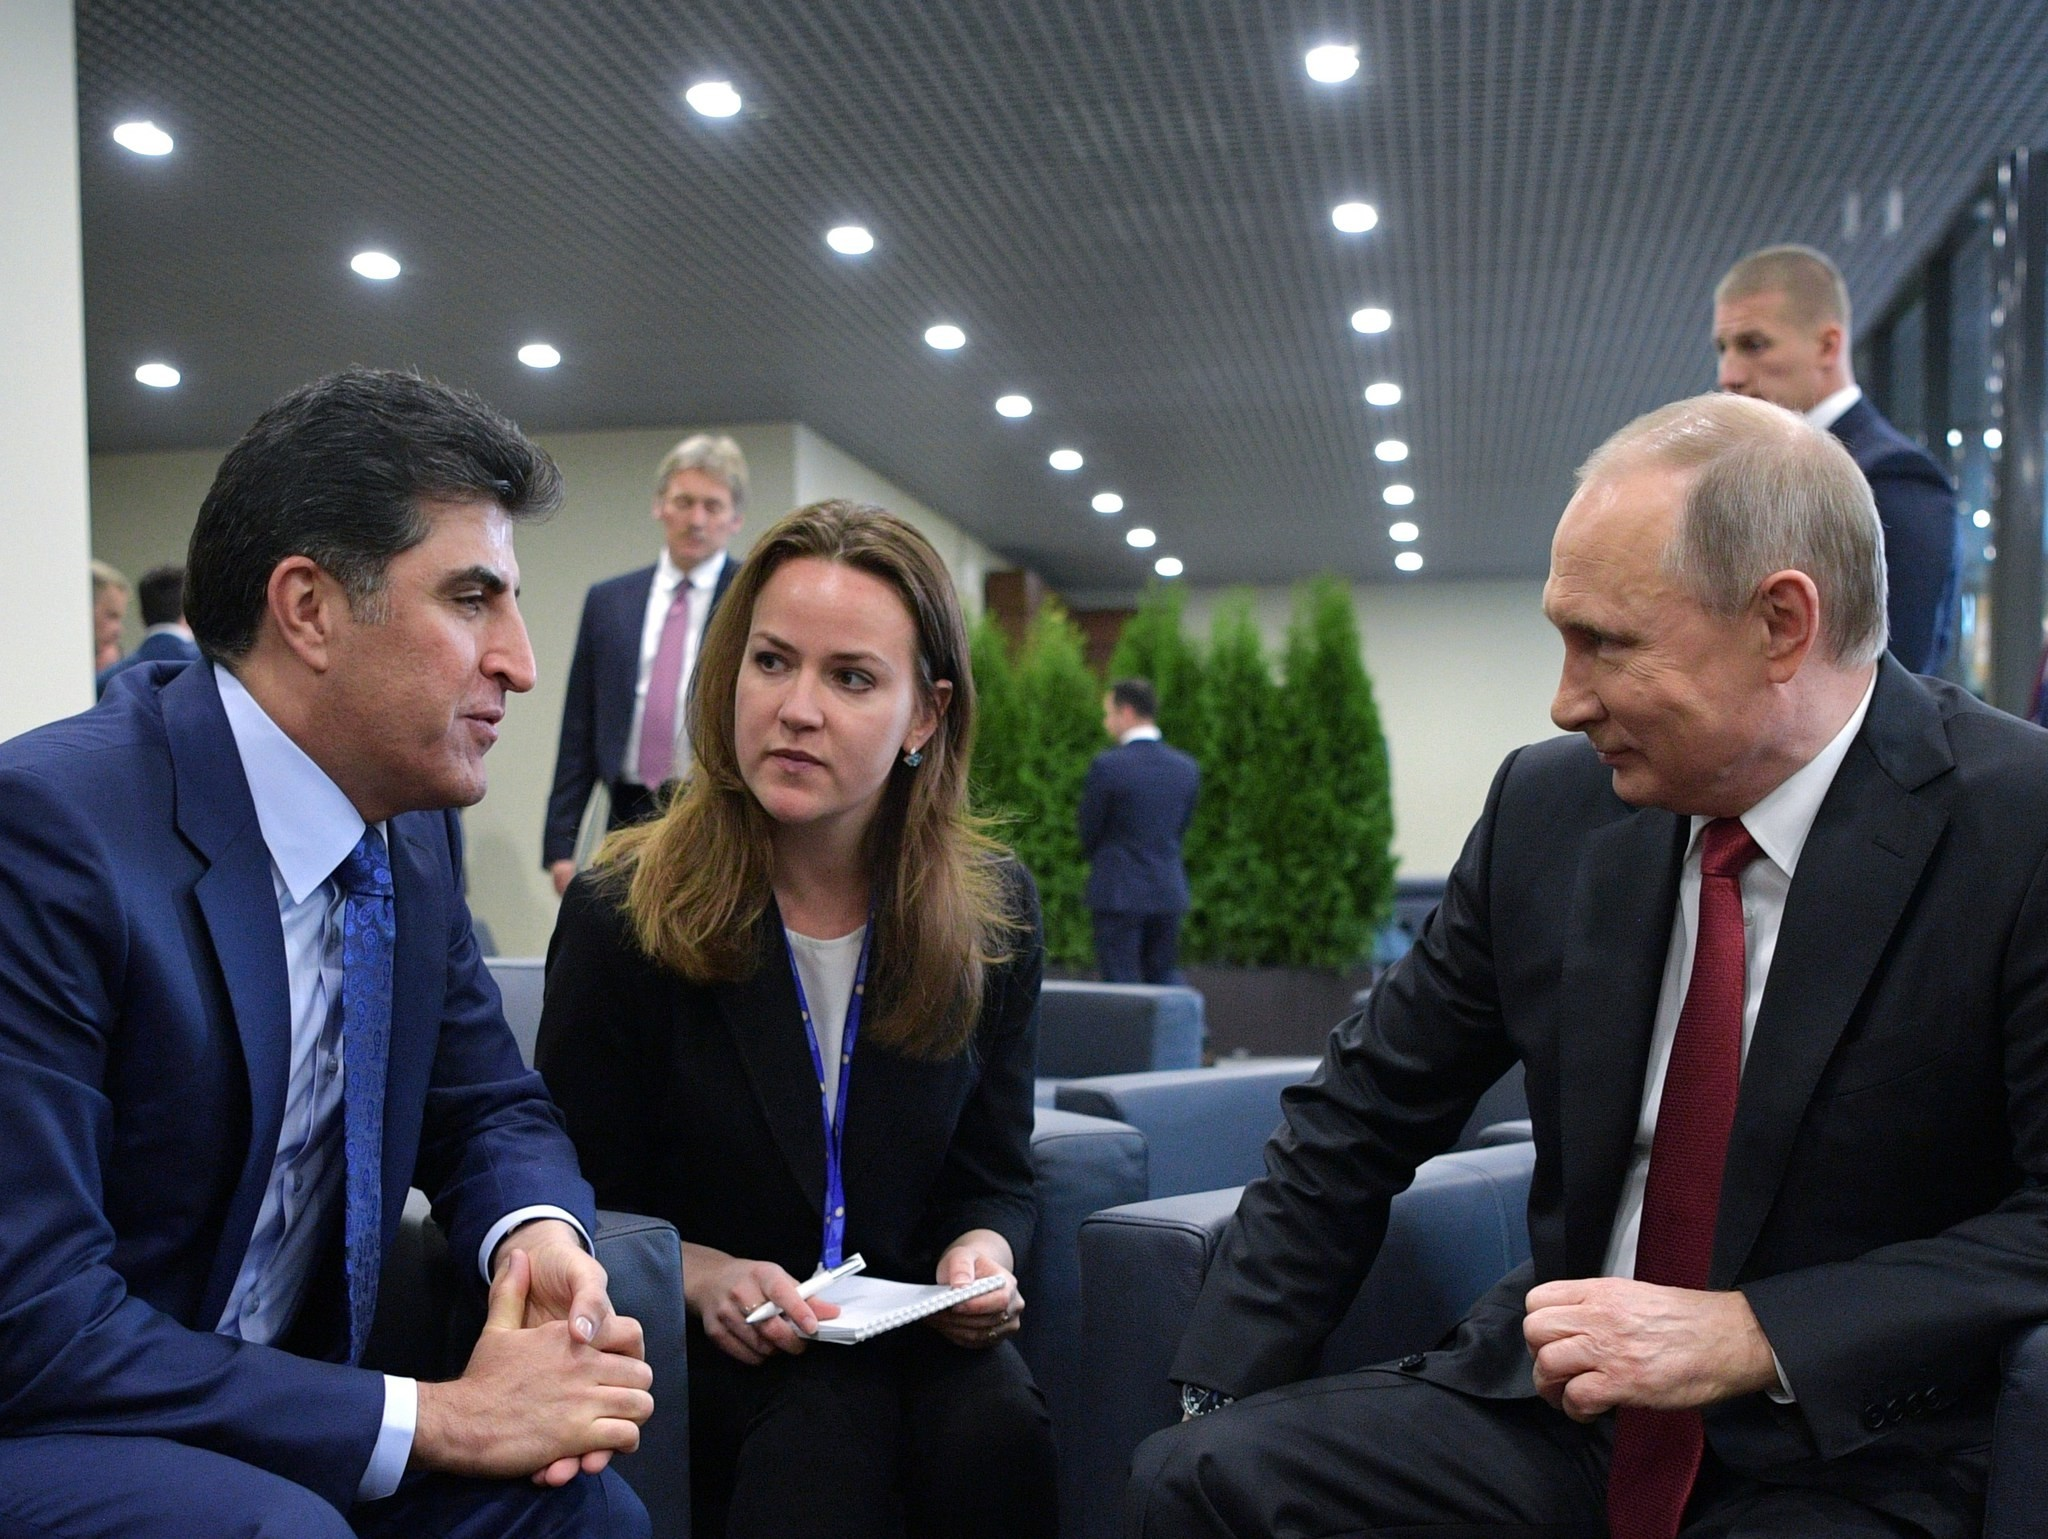 Putin (R) and Prime Minister of the PM of the KRG Nechirvan Barzani (L) meet on the sidelines of the 2017 St. Petersburg International Economic Forum (SPIEF 2017). (EPA Photo)